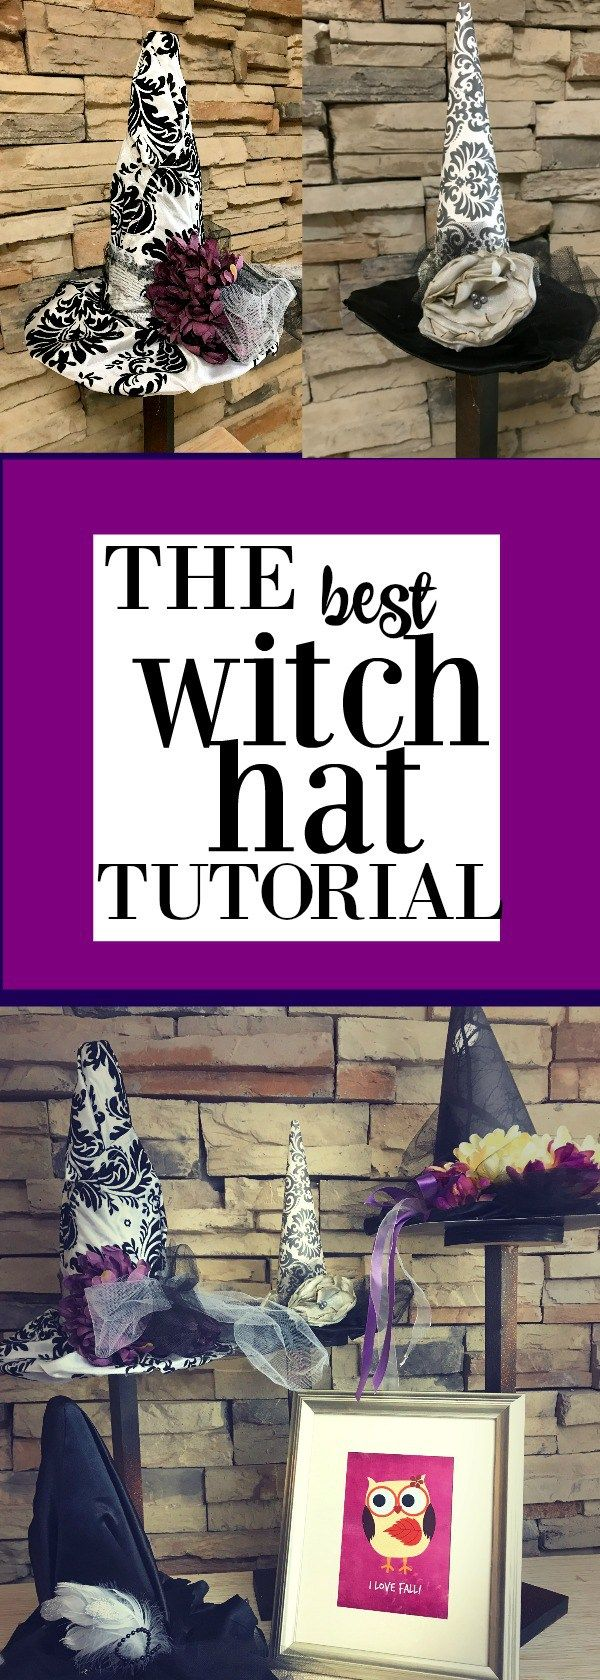 Witch hat Tutorial plus ideas on themes like Harry Potter and Practical Magic wi...